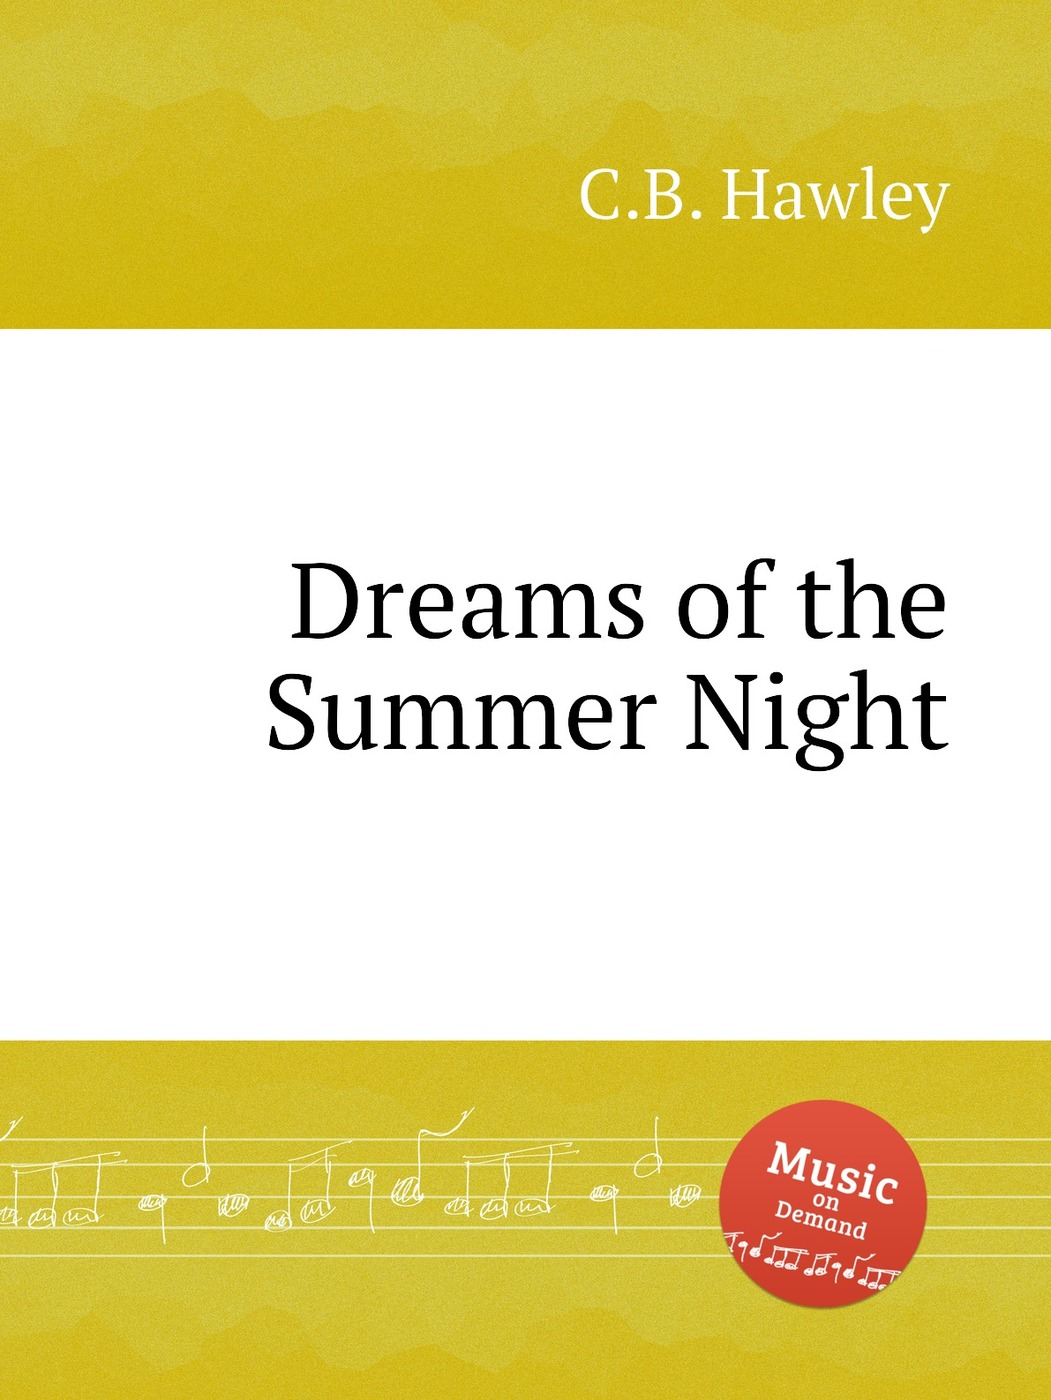 Dreams of the Summer Night